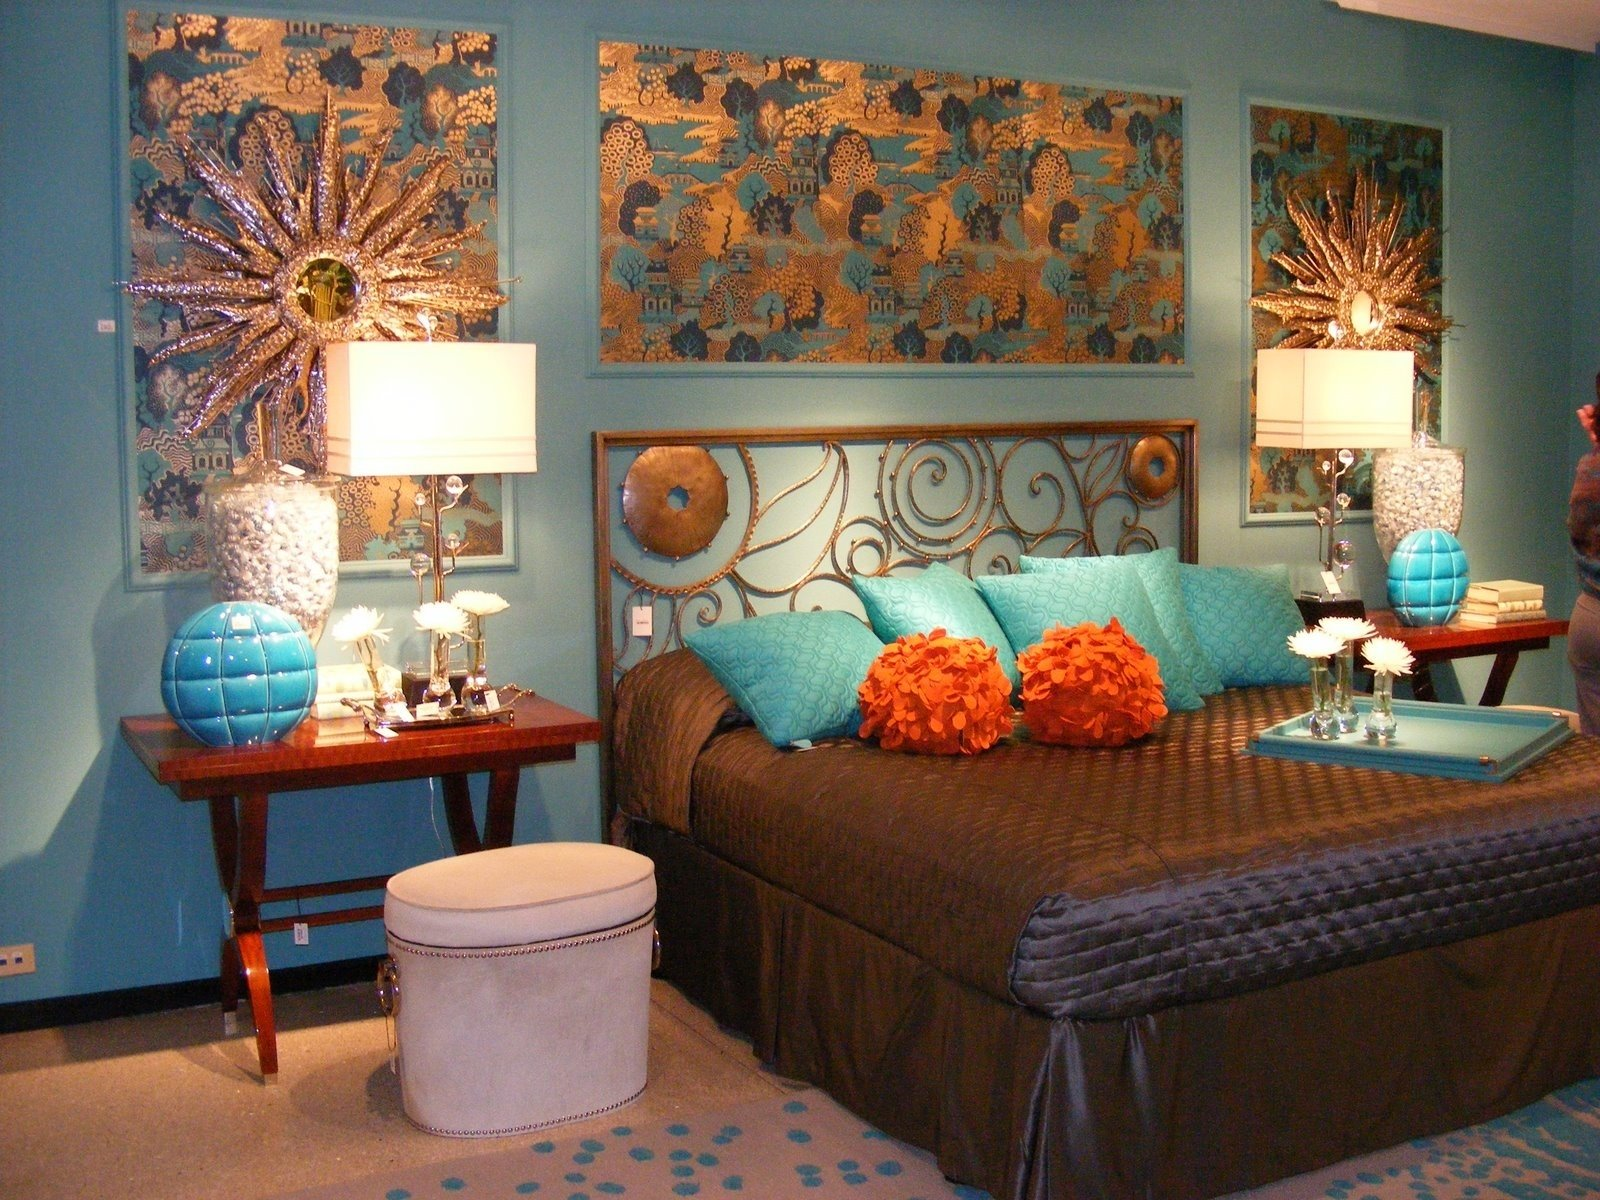 10 Most Popular Teal And Brown Bedroom Ideas bedrooms interesting outstanding bedroom ideas teal and brown brown 2021